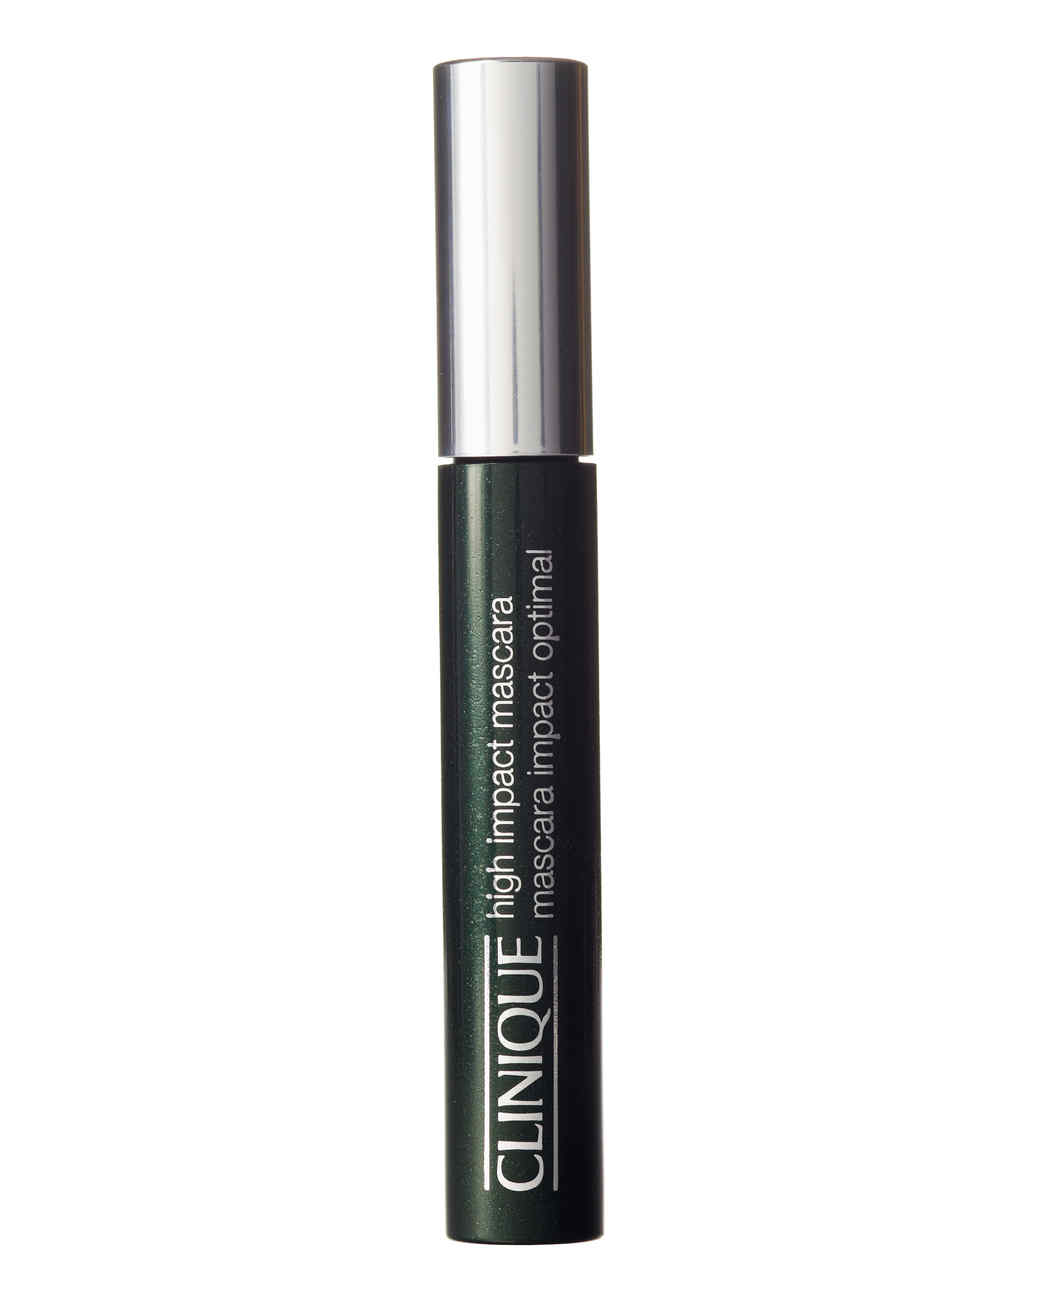 clinique-high-impact-mascara-018-mld109568.jpg